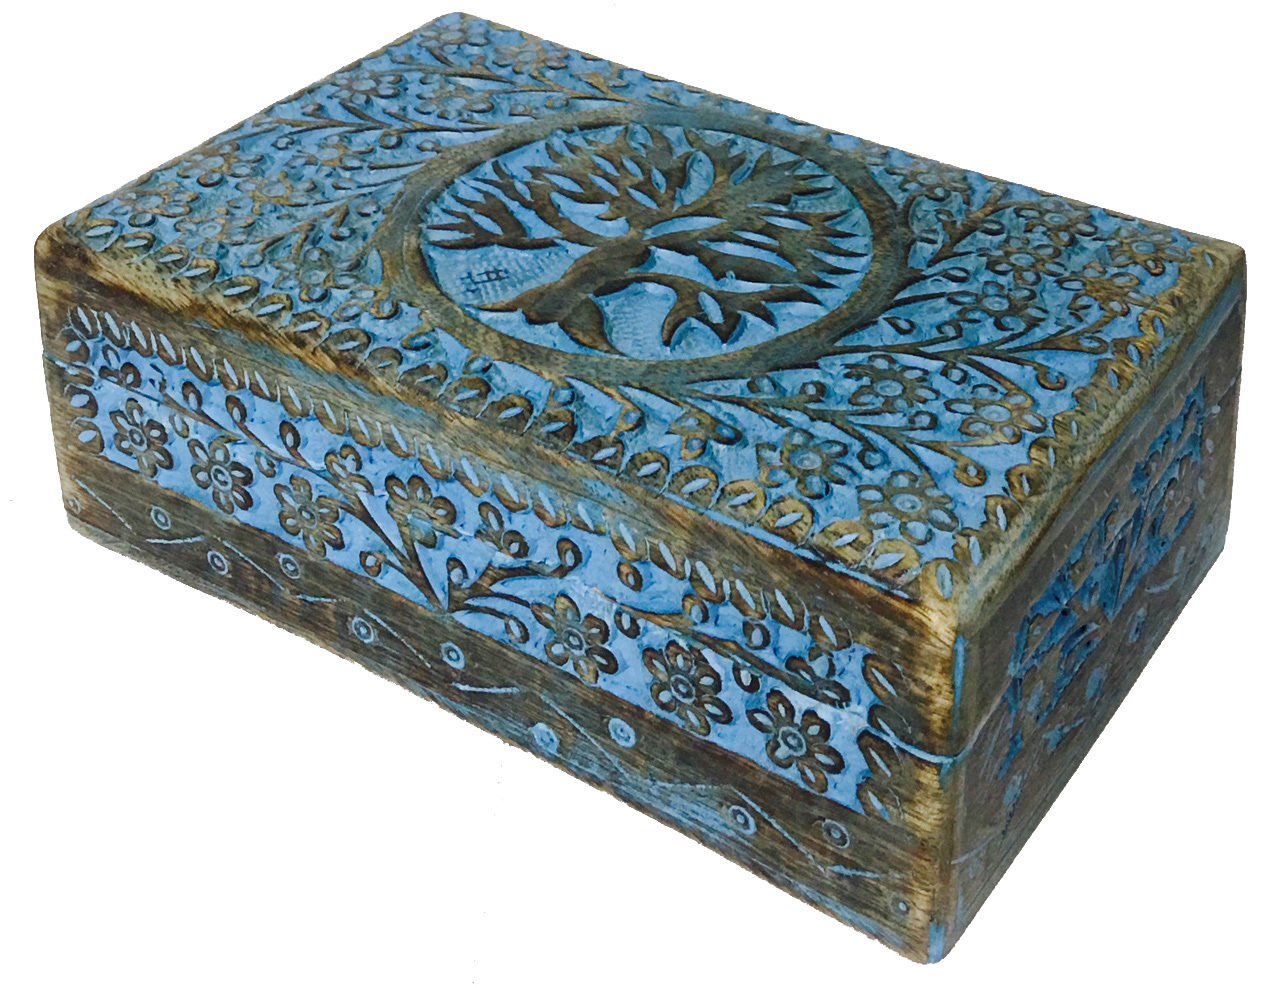 vrinda Wooden Hand Carved Tree of Life Box 8 inch x 5 inch. Vrinda®